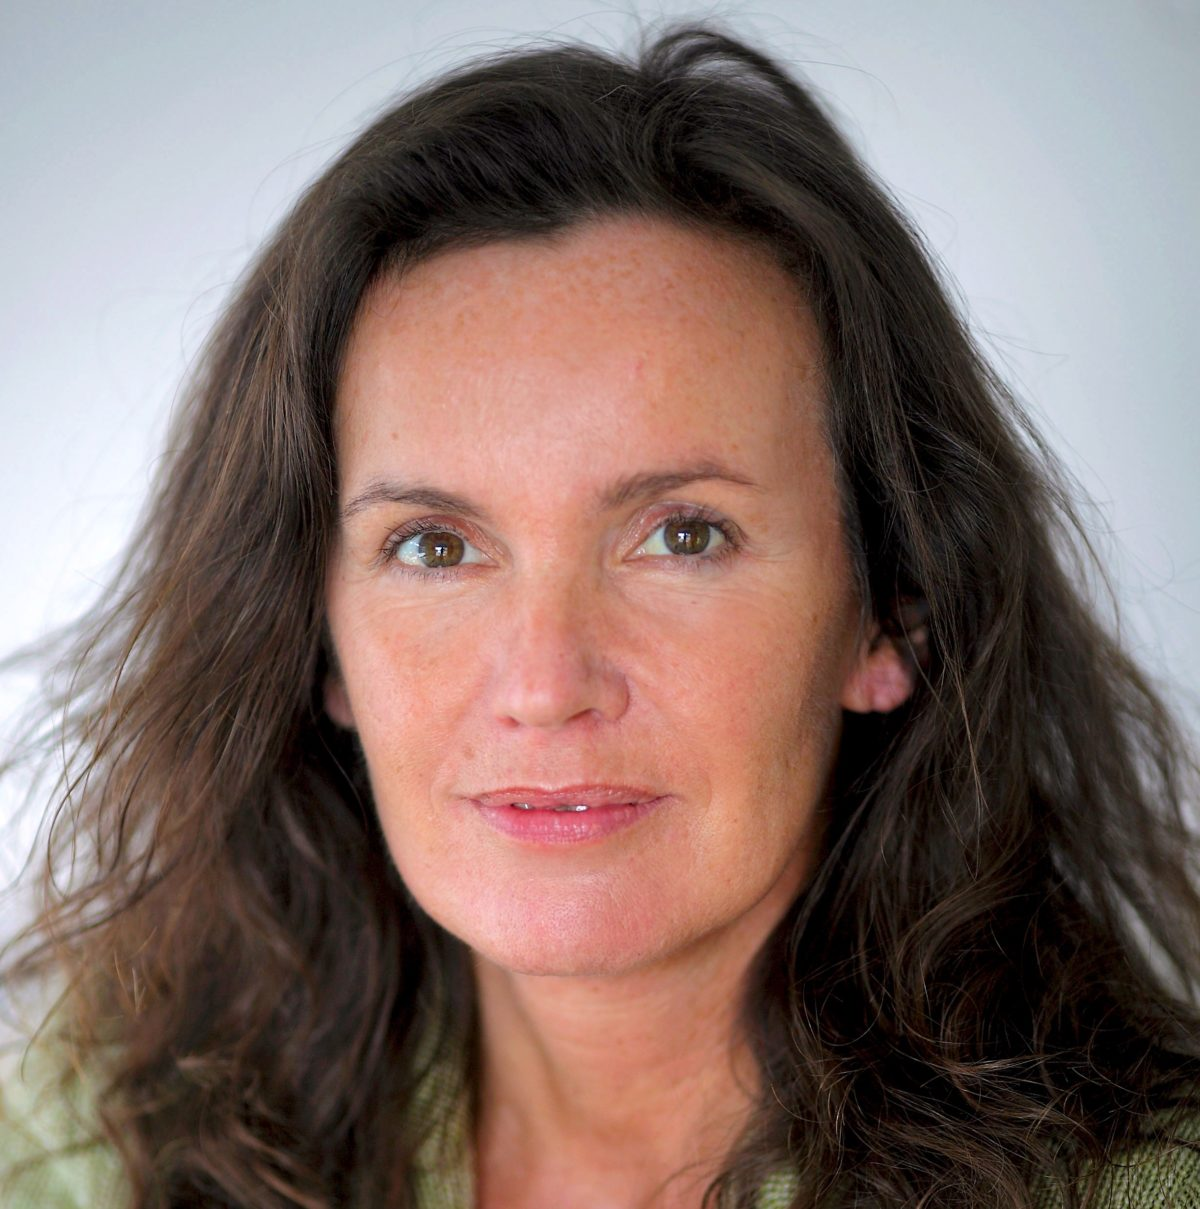 Editor of two South West weeklies Zena O'Rourke dies aged 53: 'A true newspaper enthusiast'